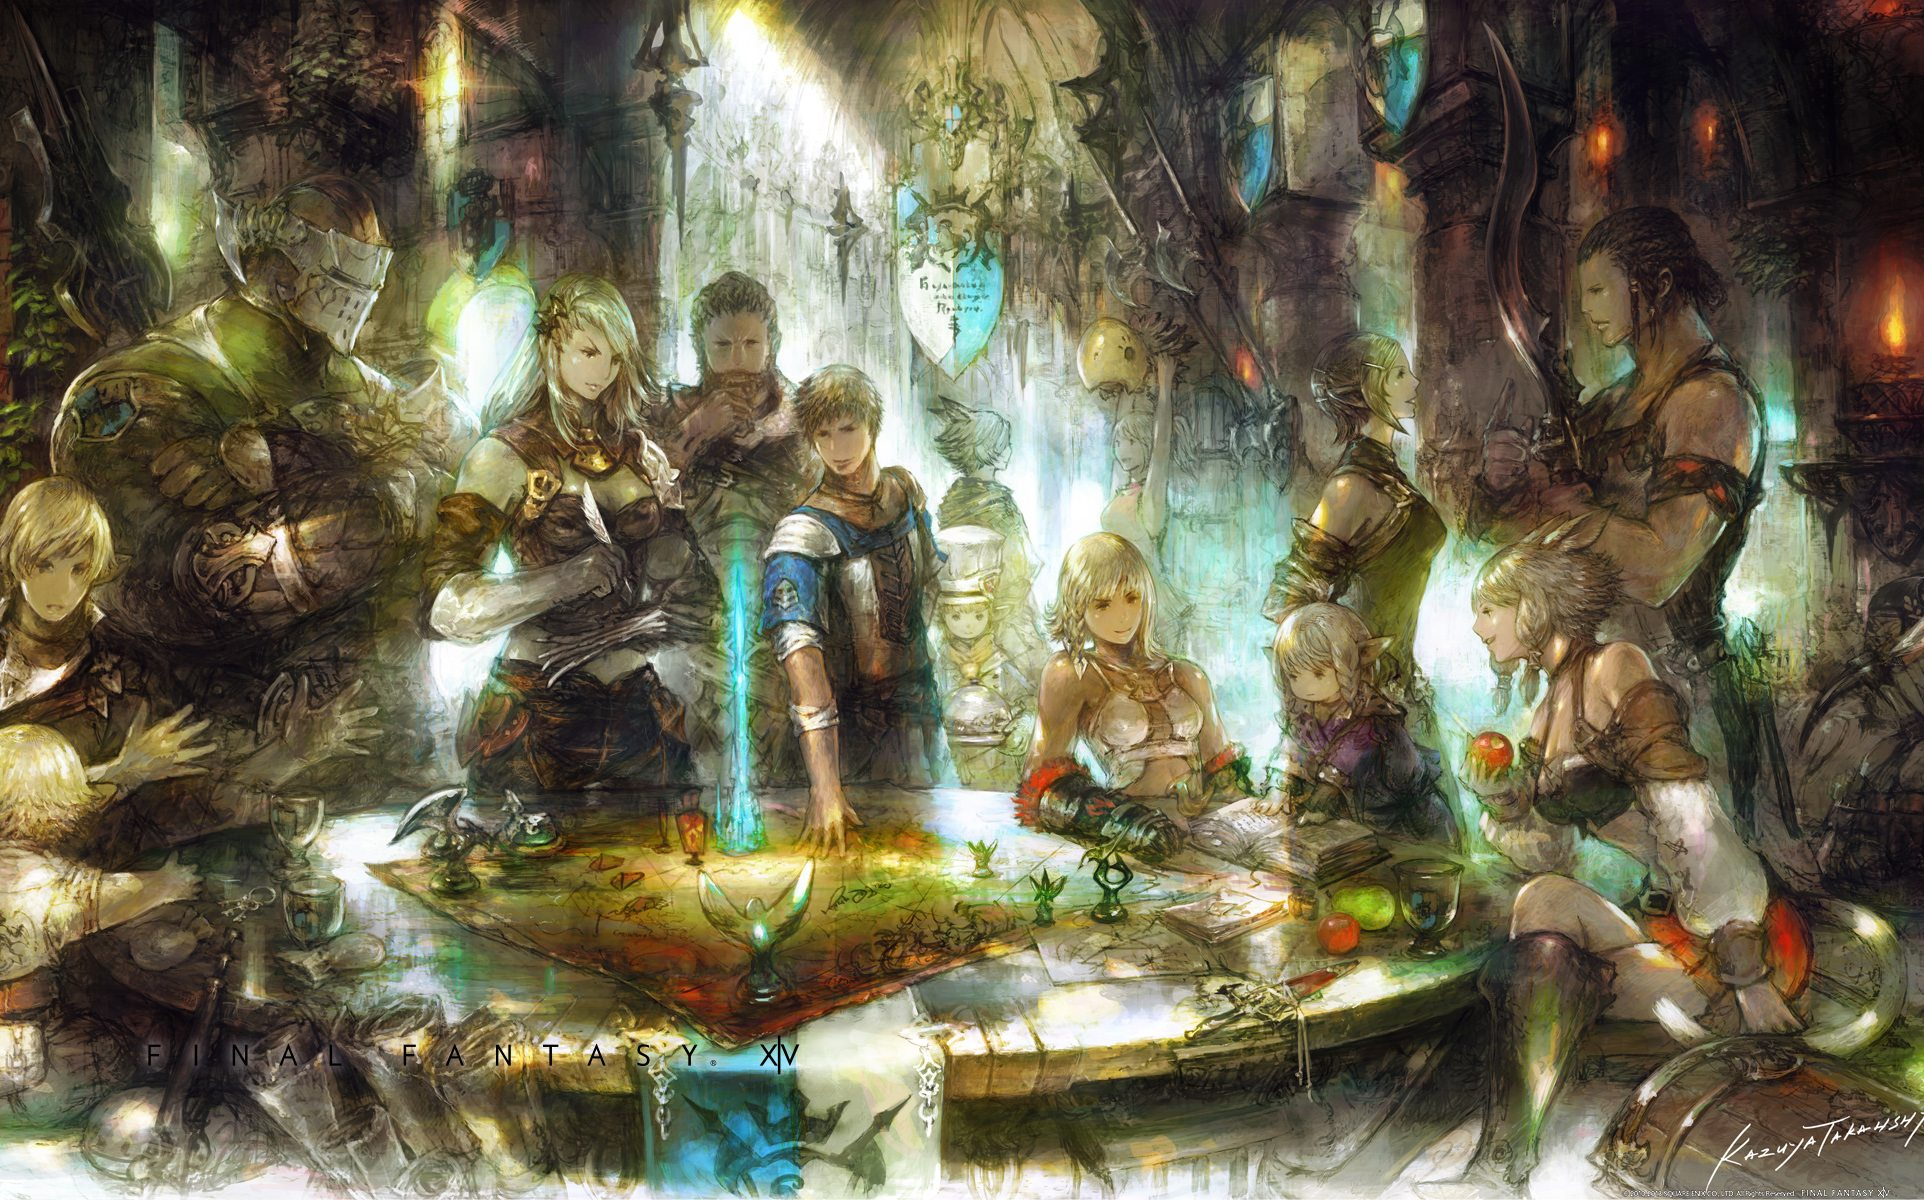 Final Fantasy XIV A Realm Reborn On Sale Again at 25 Off After 1924x1200